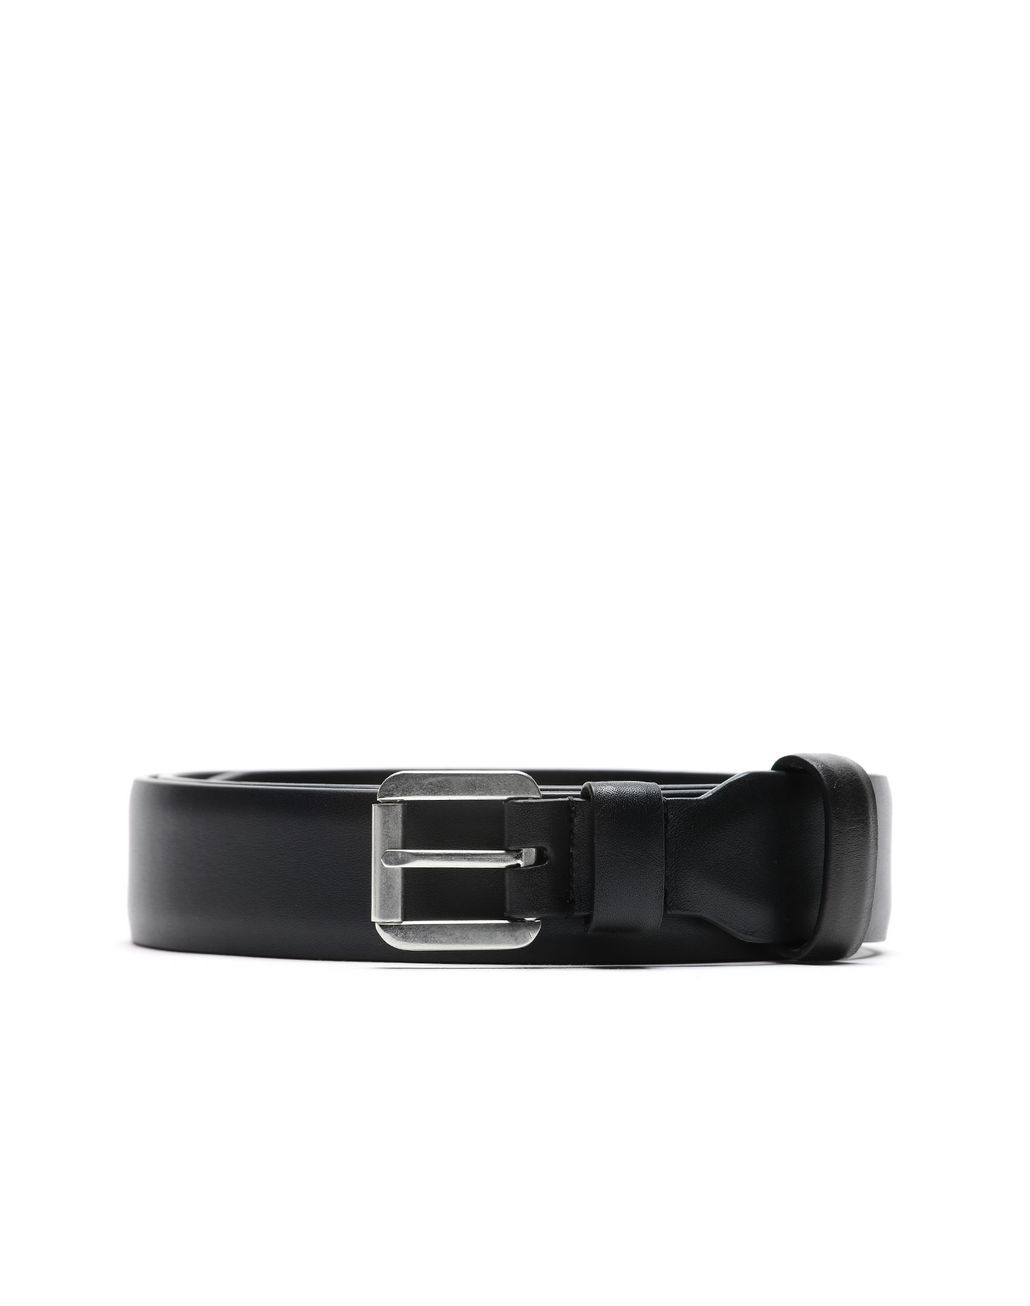 BRIONI Black Invisible Belt Gürtel Herren r